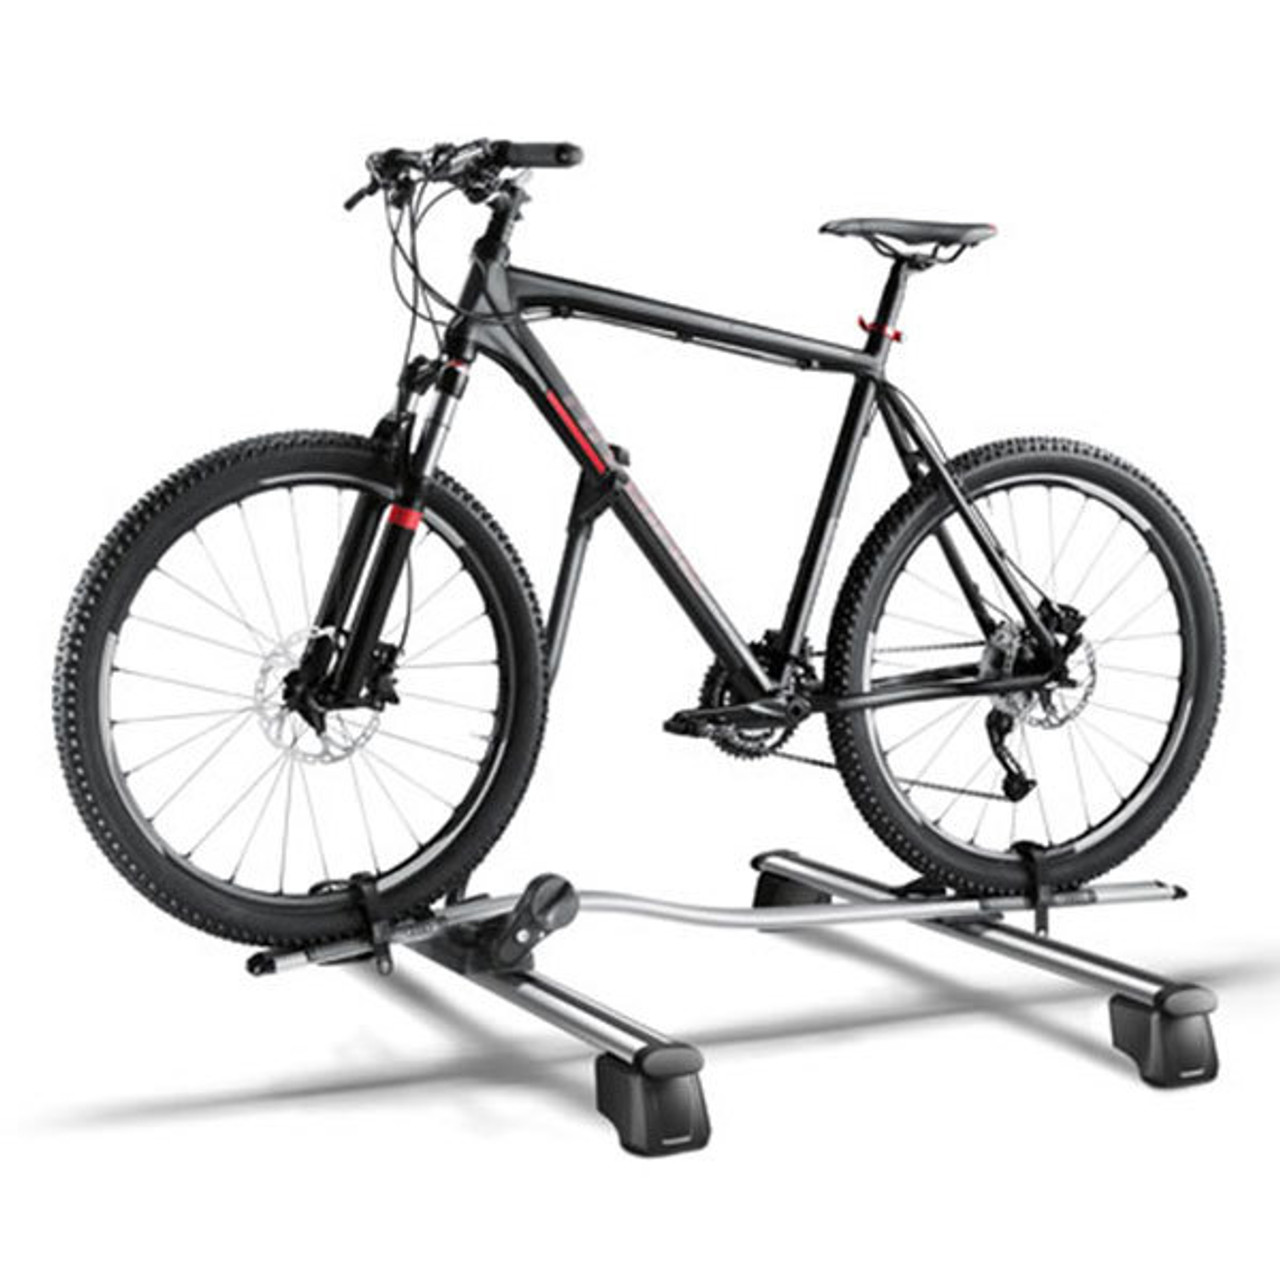 Audi Bicycle Carrier (for Roof Bars)